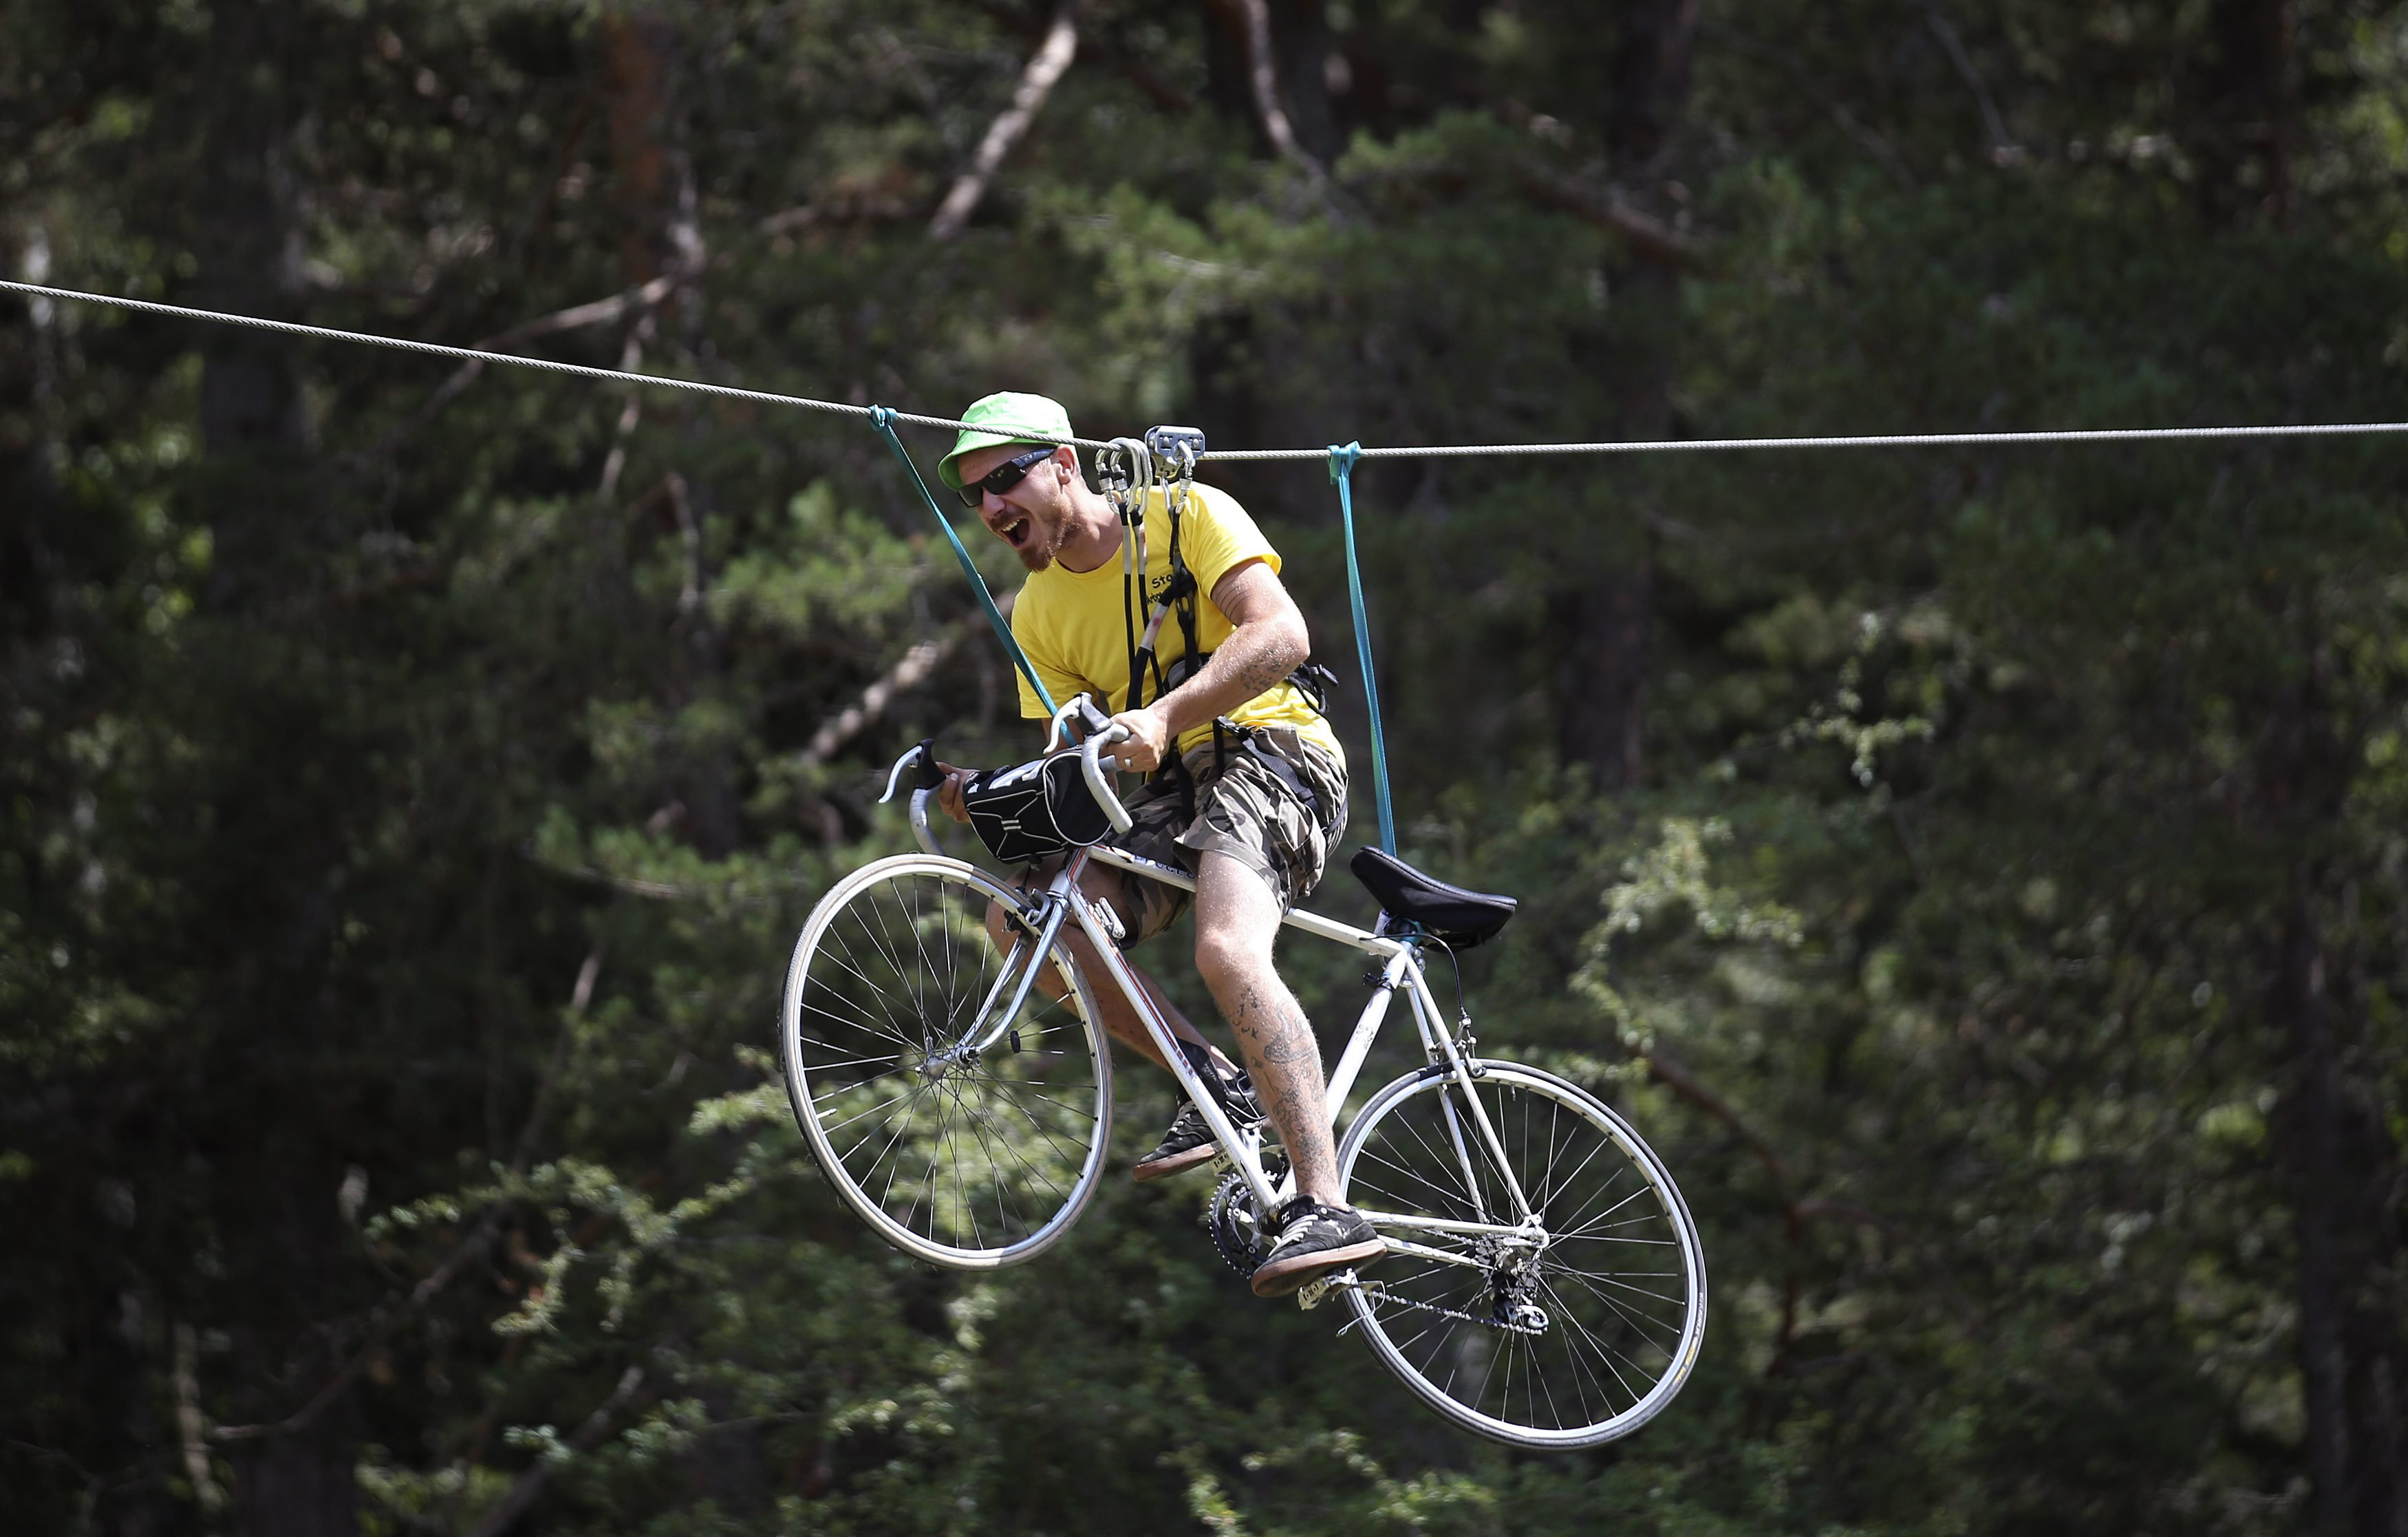 A fan rides a bicycle as he is suspended from a cable during the 17th stage of the race from Digne-les-Bains to Pra Loup in the French Alps mountains on July 22, 2015.